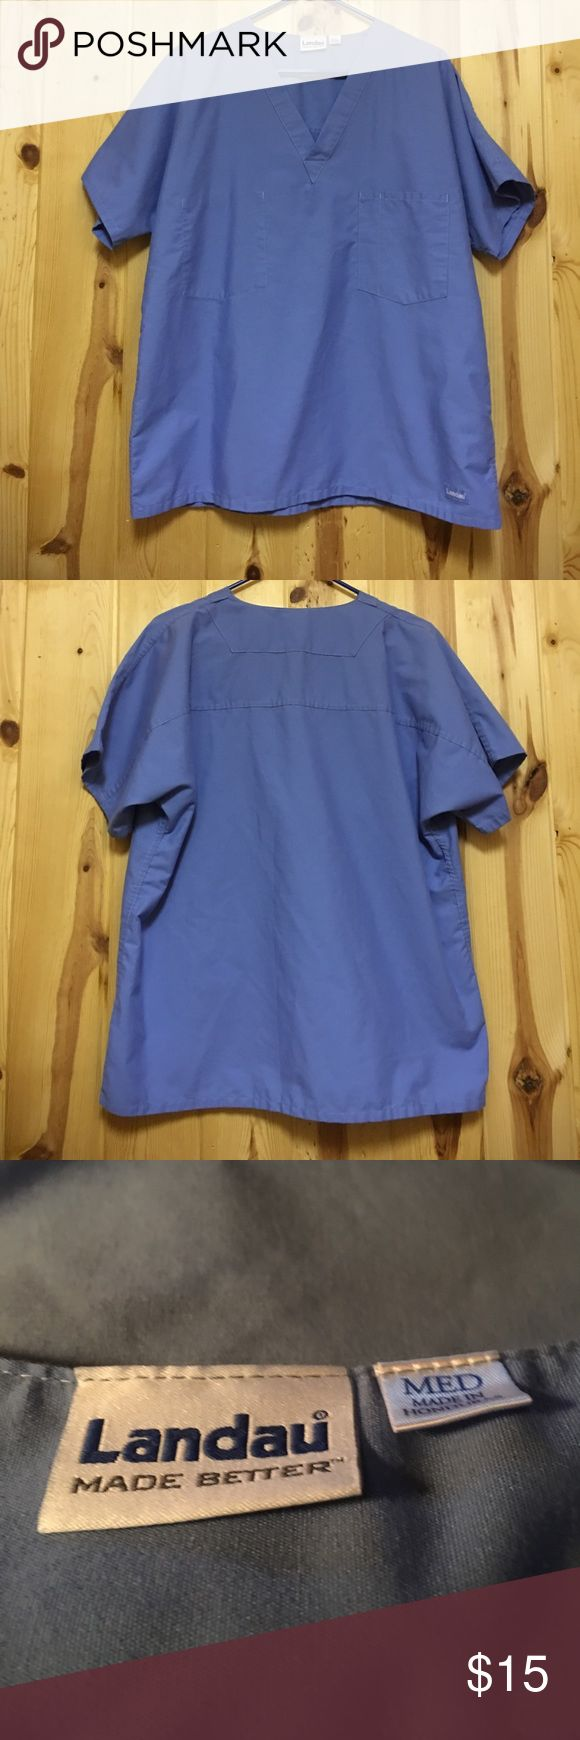 Landau Scrub Top Medium Ceil Blue  EUC Landau Scrub Top Medium Ceil Blue  EUC Reversible I do not have matching pant at this time. Landau Tops